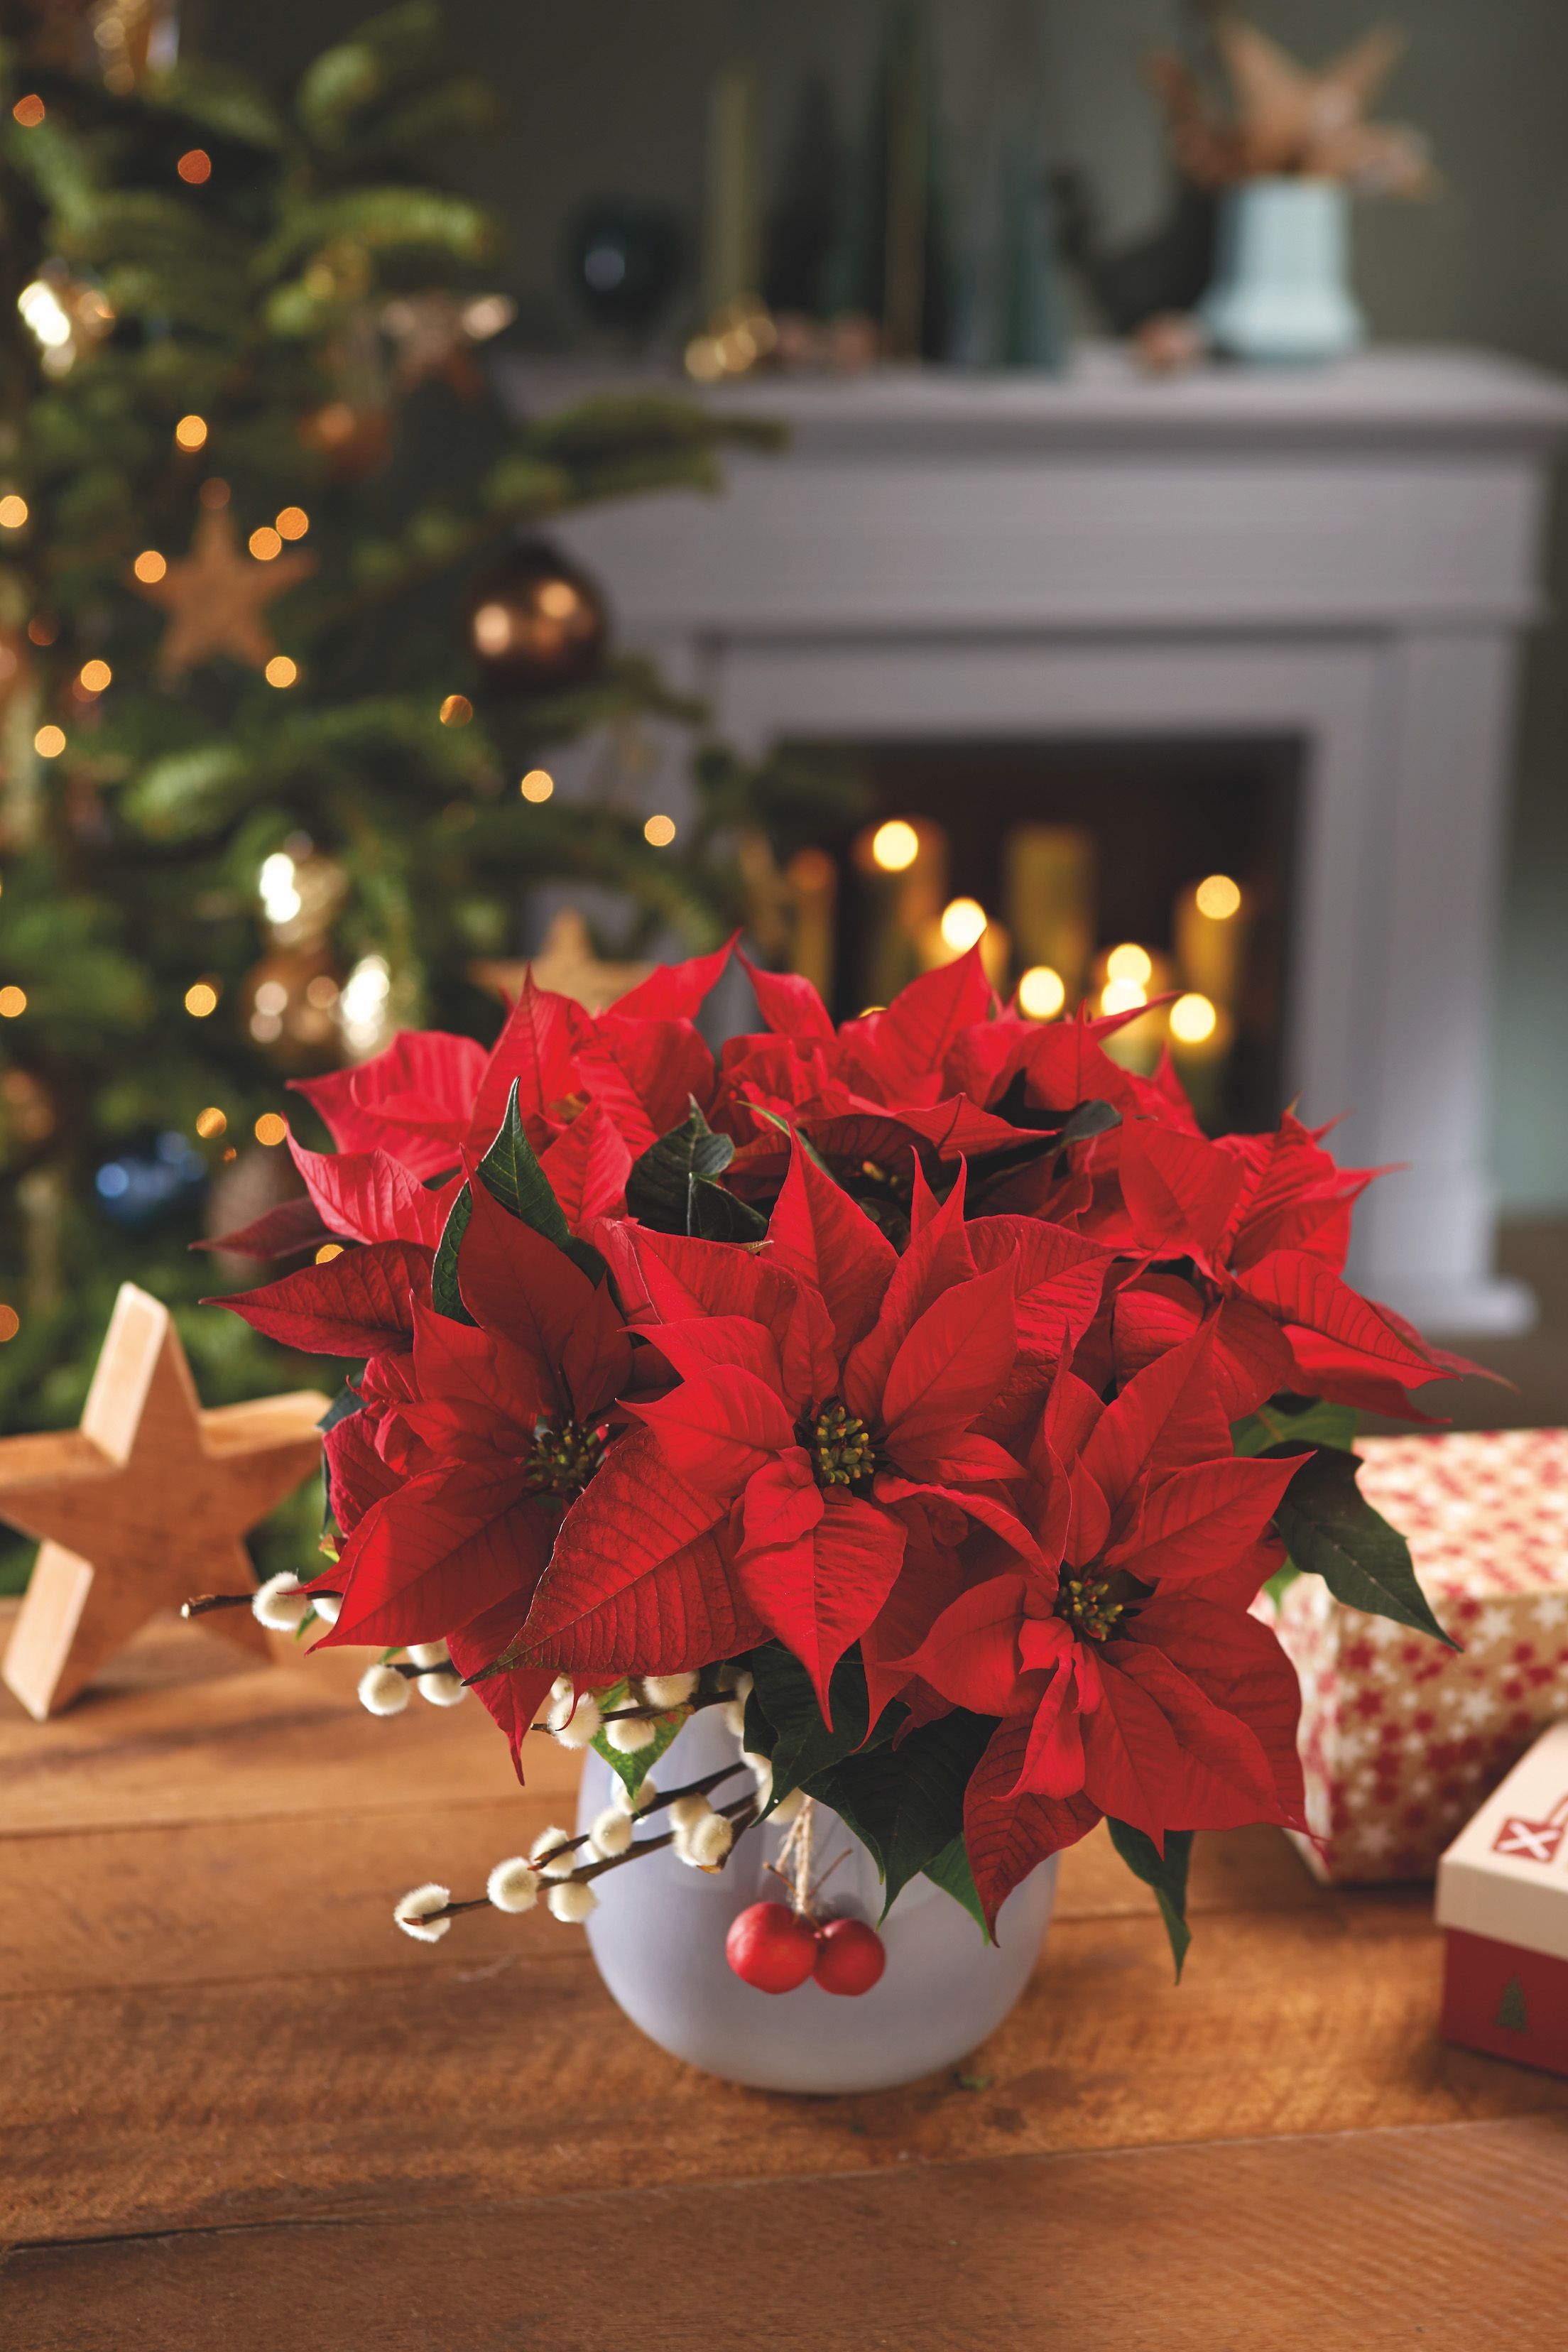 Poinsettia Care Tips 7 Golden Rules For A Plant Christmas